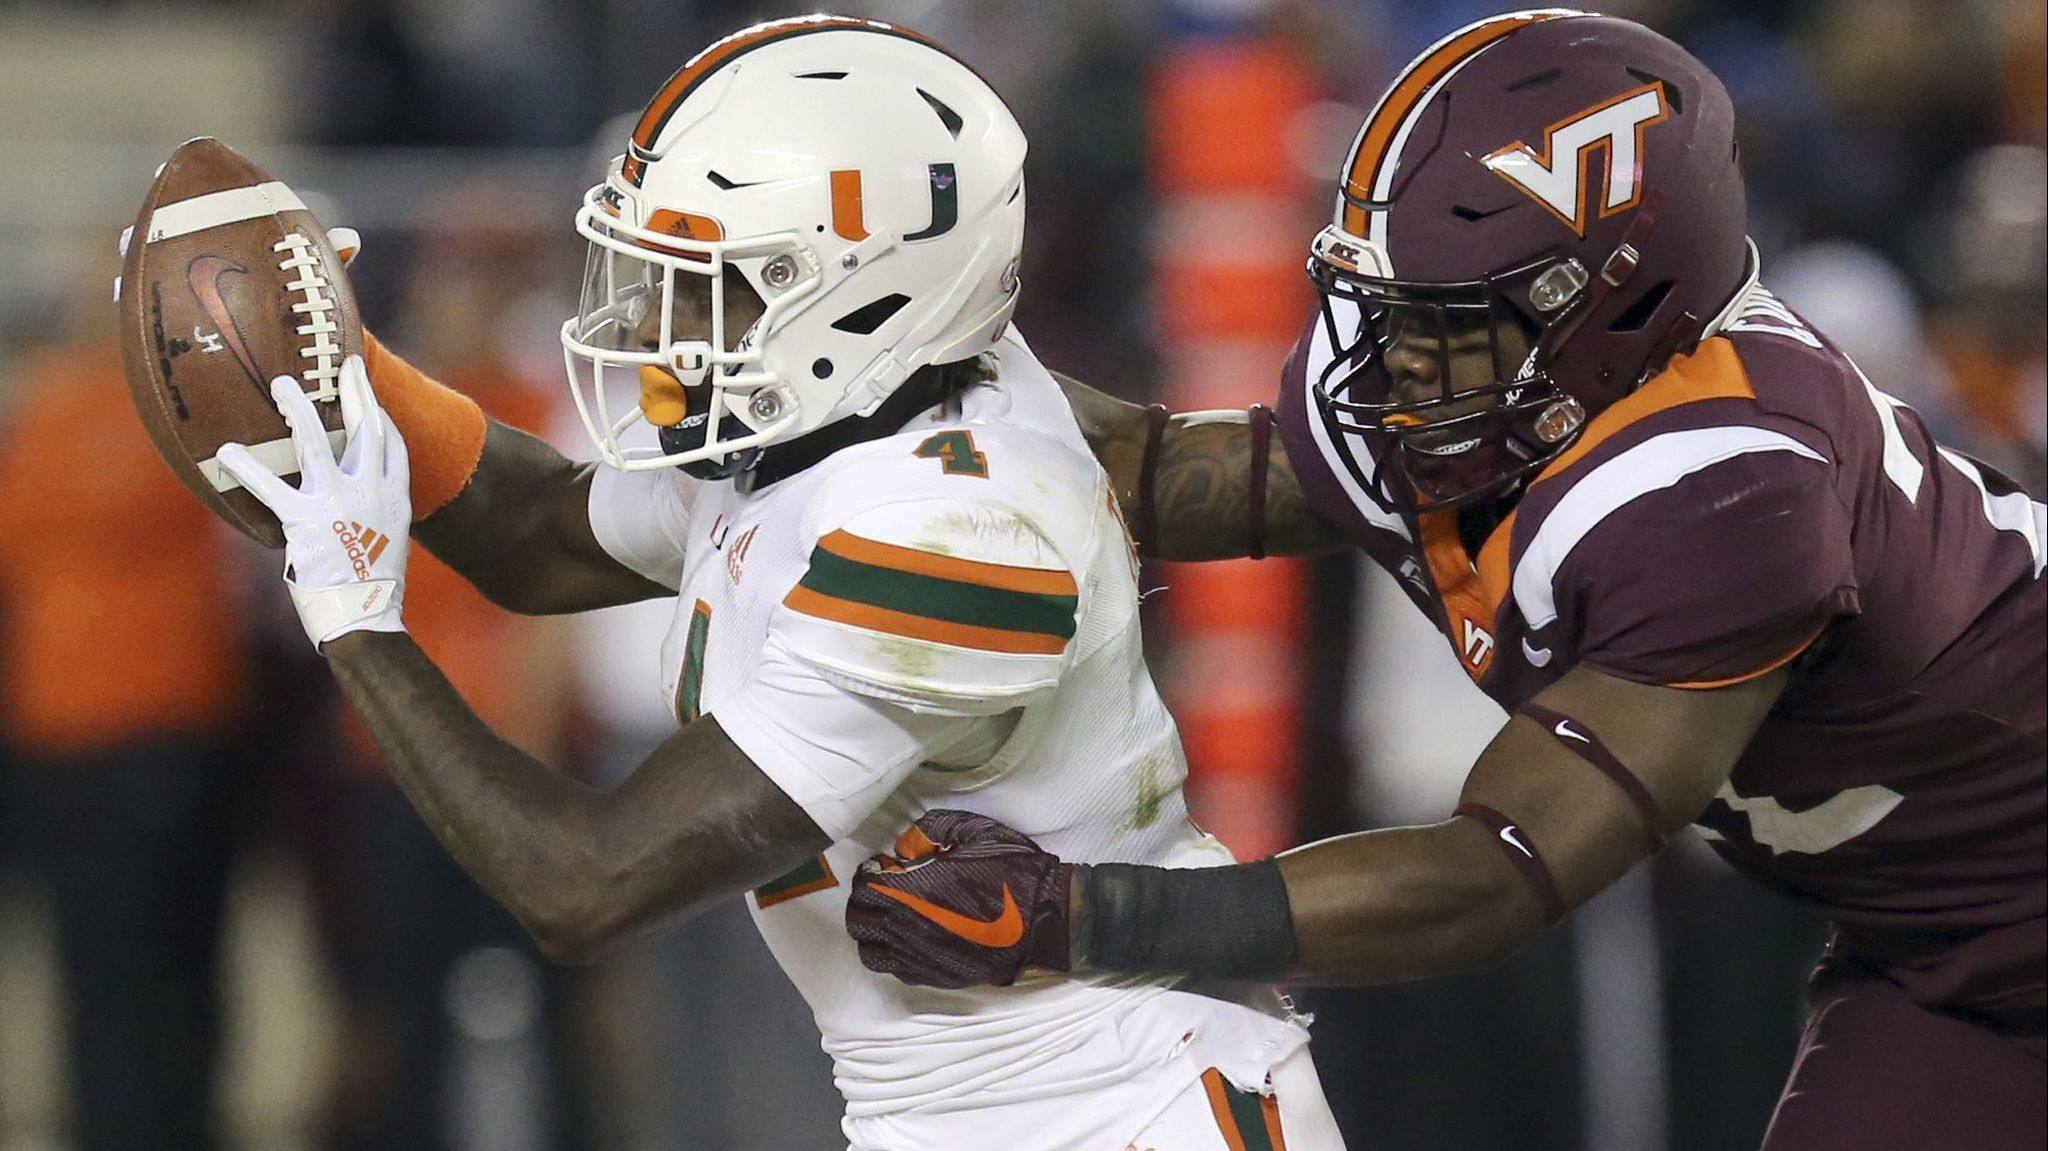 UM s Jeff Thomas saga continues with receiver saying he is returning to  Miami Sun Sentinel - 23 15 PM ET January 15 37599e668